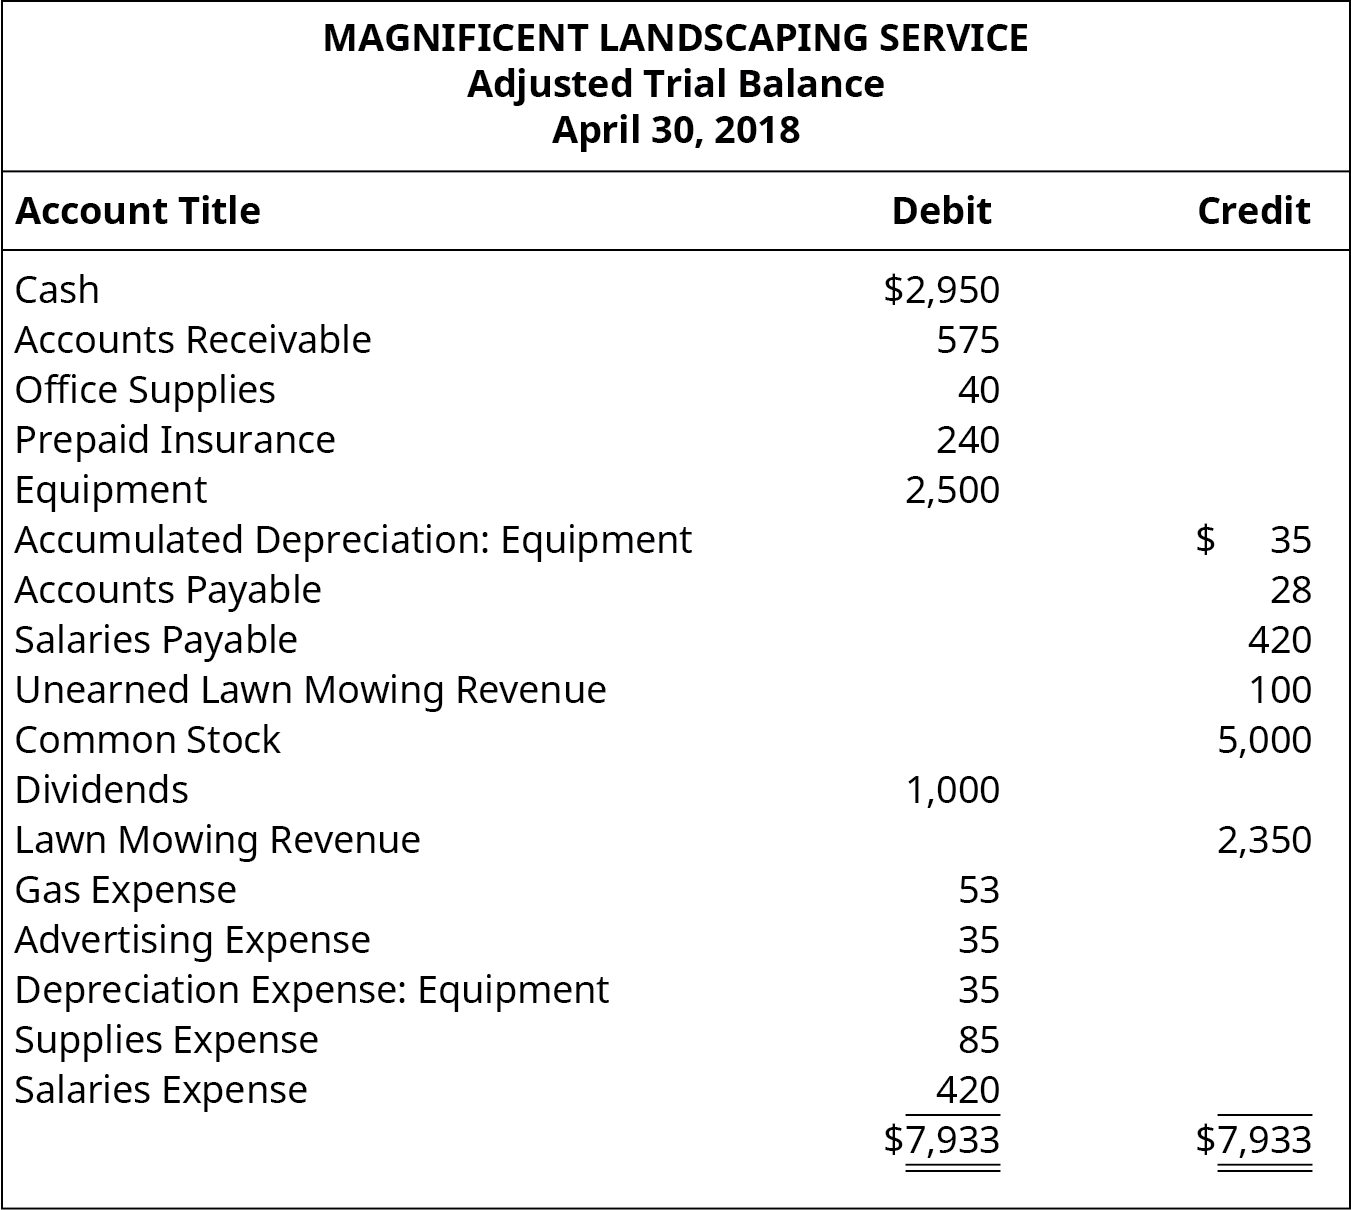 Magnificent Landscaping Service, Adjusted Trial Balance, April 30, 2018. Debit accounts: Cash $2,950; Accounts Receivable 575; Office Supplies 40; Prepaid Insurance 240; Equipment 2,500; Dividends 1,000; Gas Expense 53; Advertising Expense 35; Depreciation Expense: Equipment 35; Supplies Expense 85; Salaries Expense 420, Total Debits $7,933. Credit accounts: Accumulated Depreciation: Equipment 35; Accounts Payable 28; Salaries Payable 420; Unearned Lawn Mowing Revenue 100; Common Stock 5,000; Lawn Mowing Revenue 2,350; Total Credits $7,933.